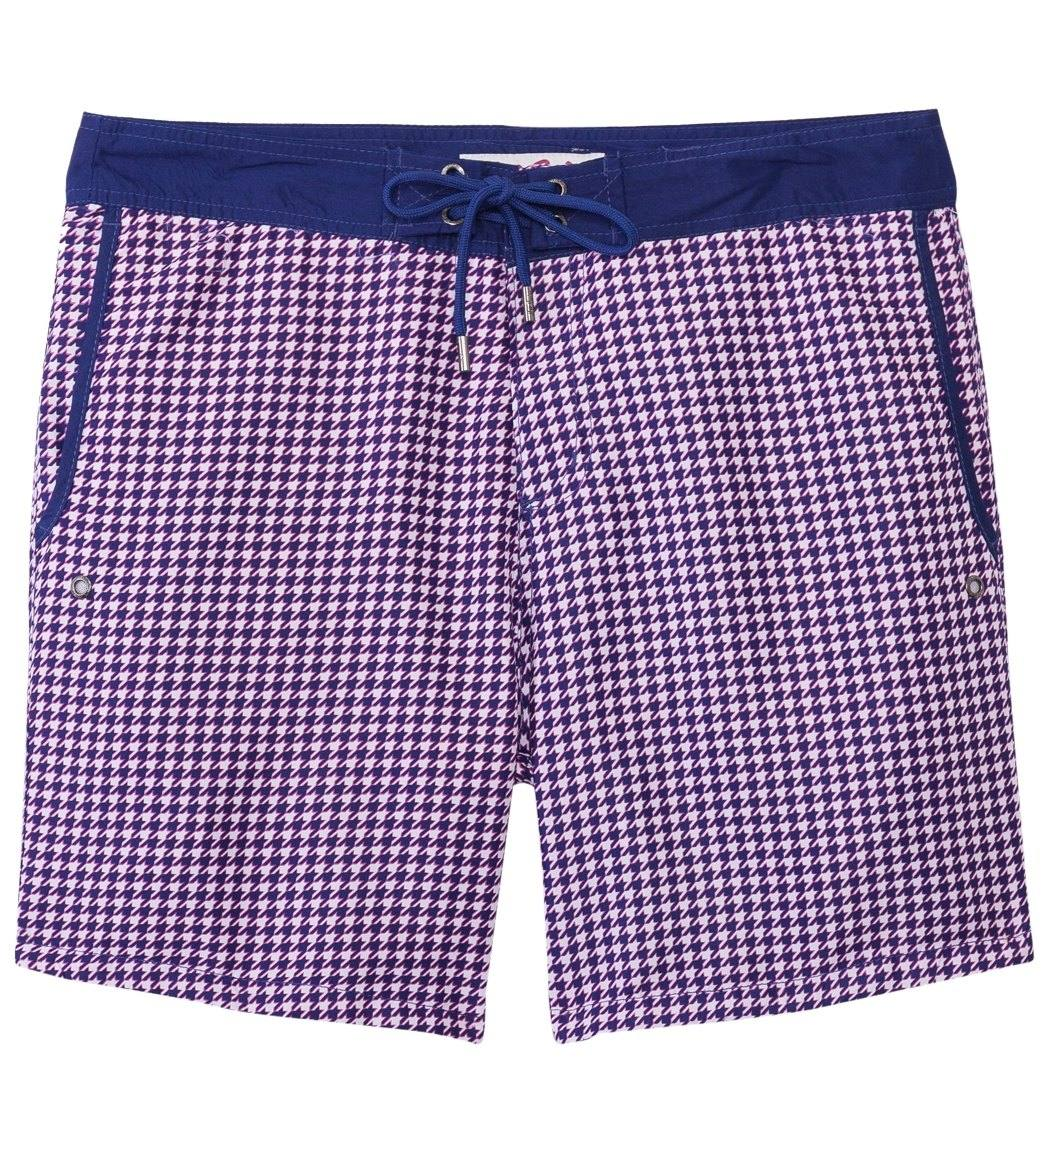 0c1d49ff41 Mr.Swim Men's Chuck Houndstooth Swim Trunk at SwimOutlet.com ...